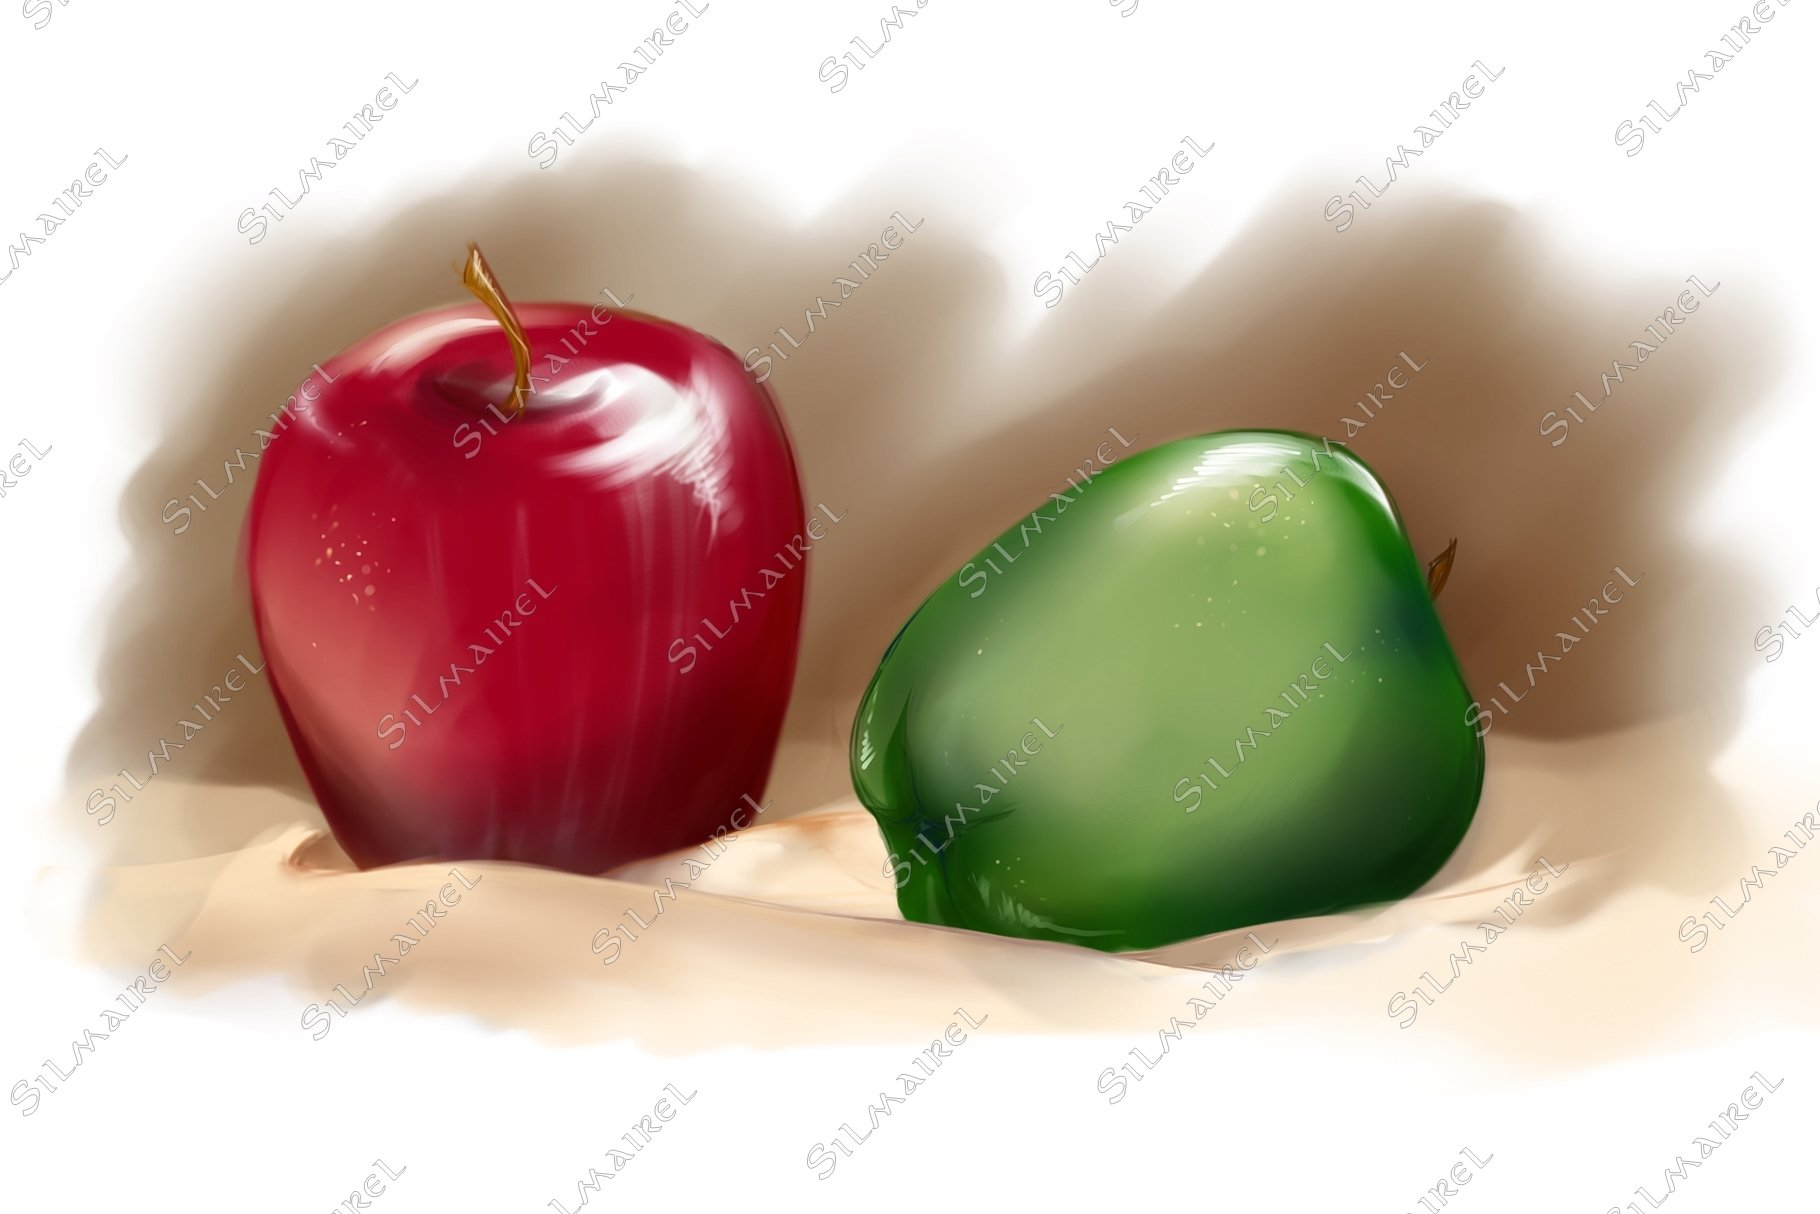 Red and green apples on cream tablecloth example image 1